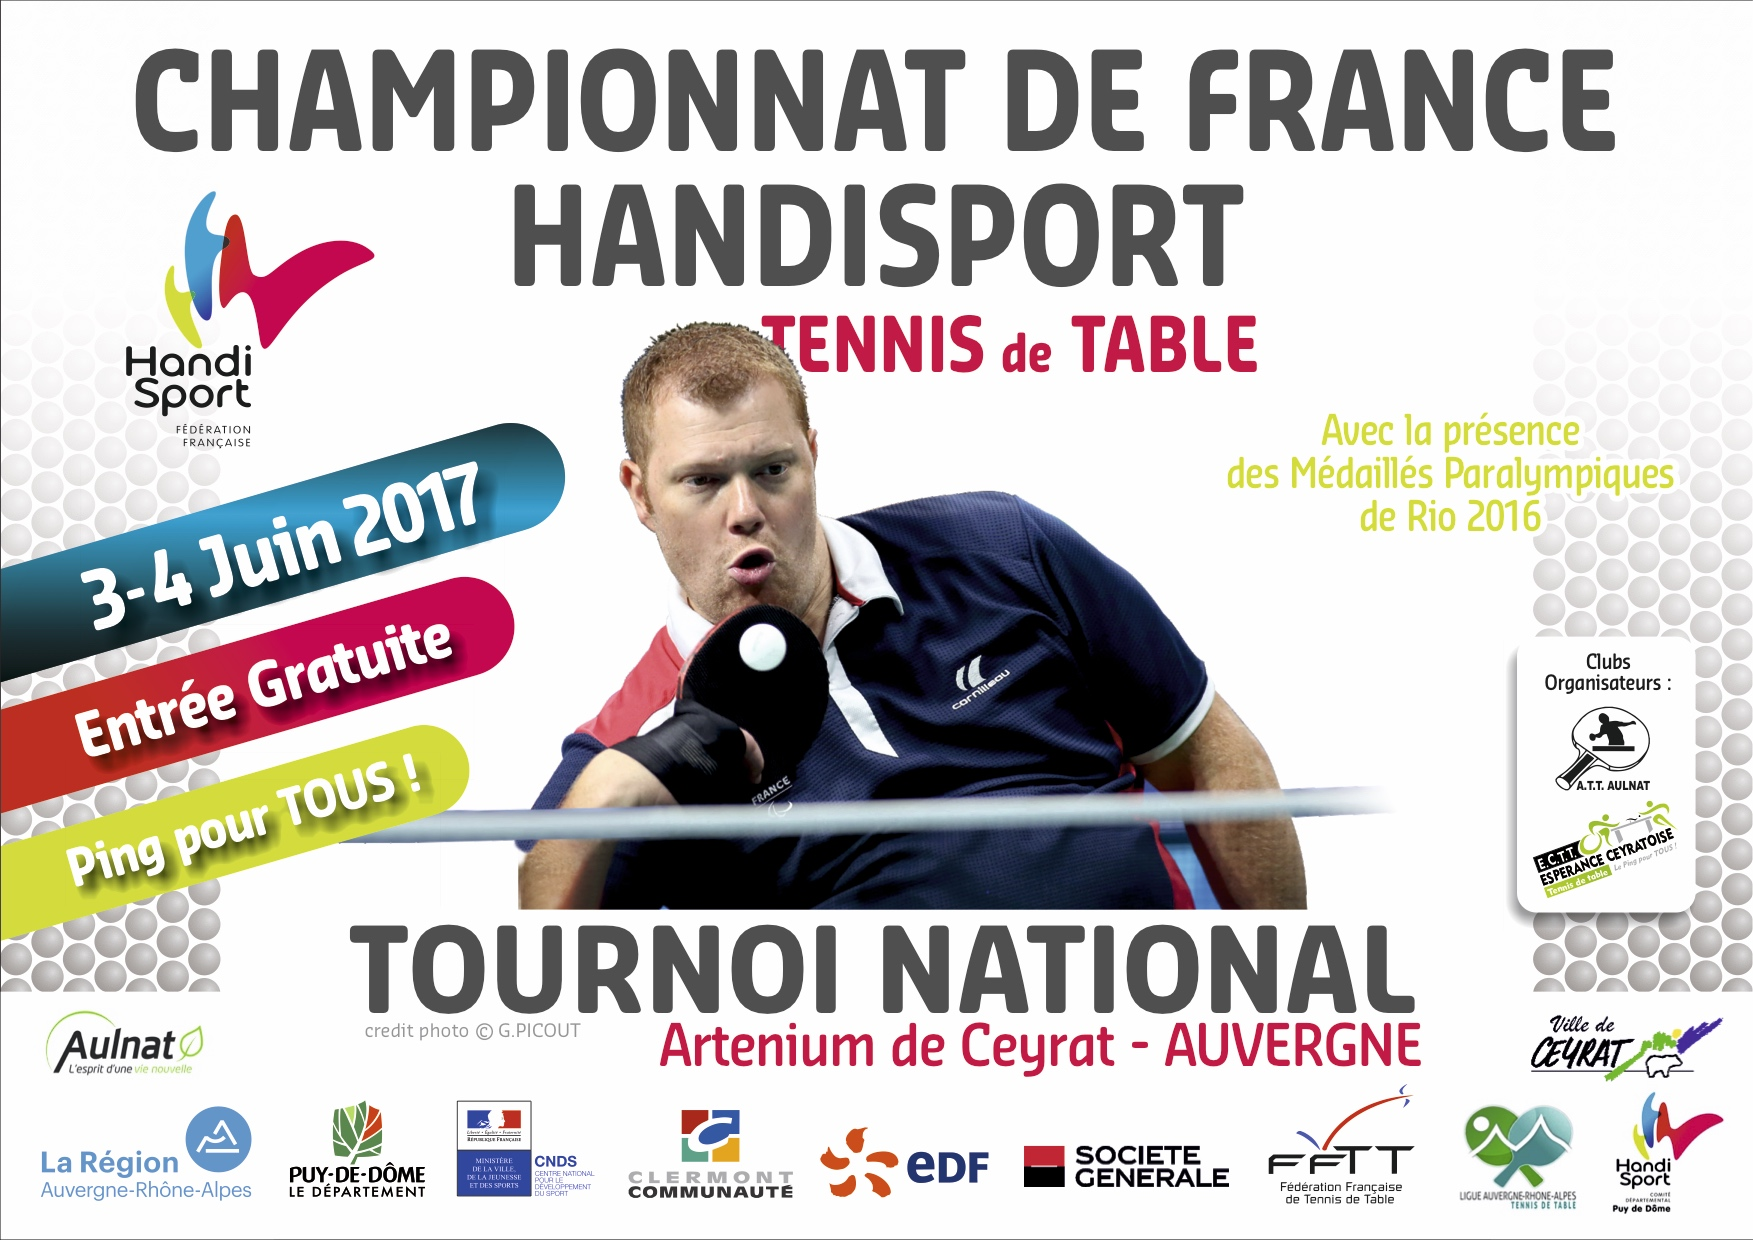 Championnats de France Handisport 2017 de Tennis de Table